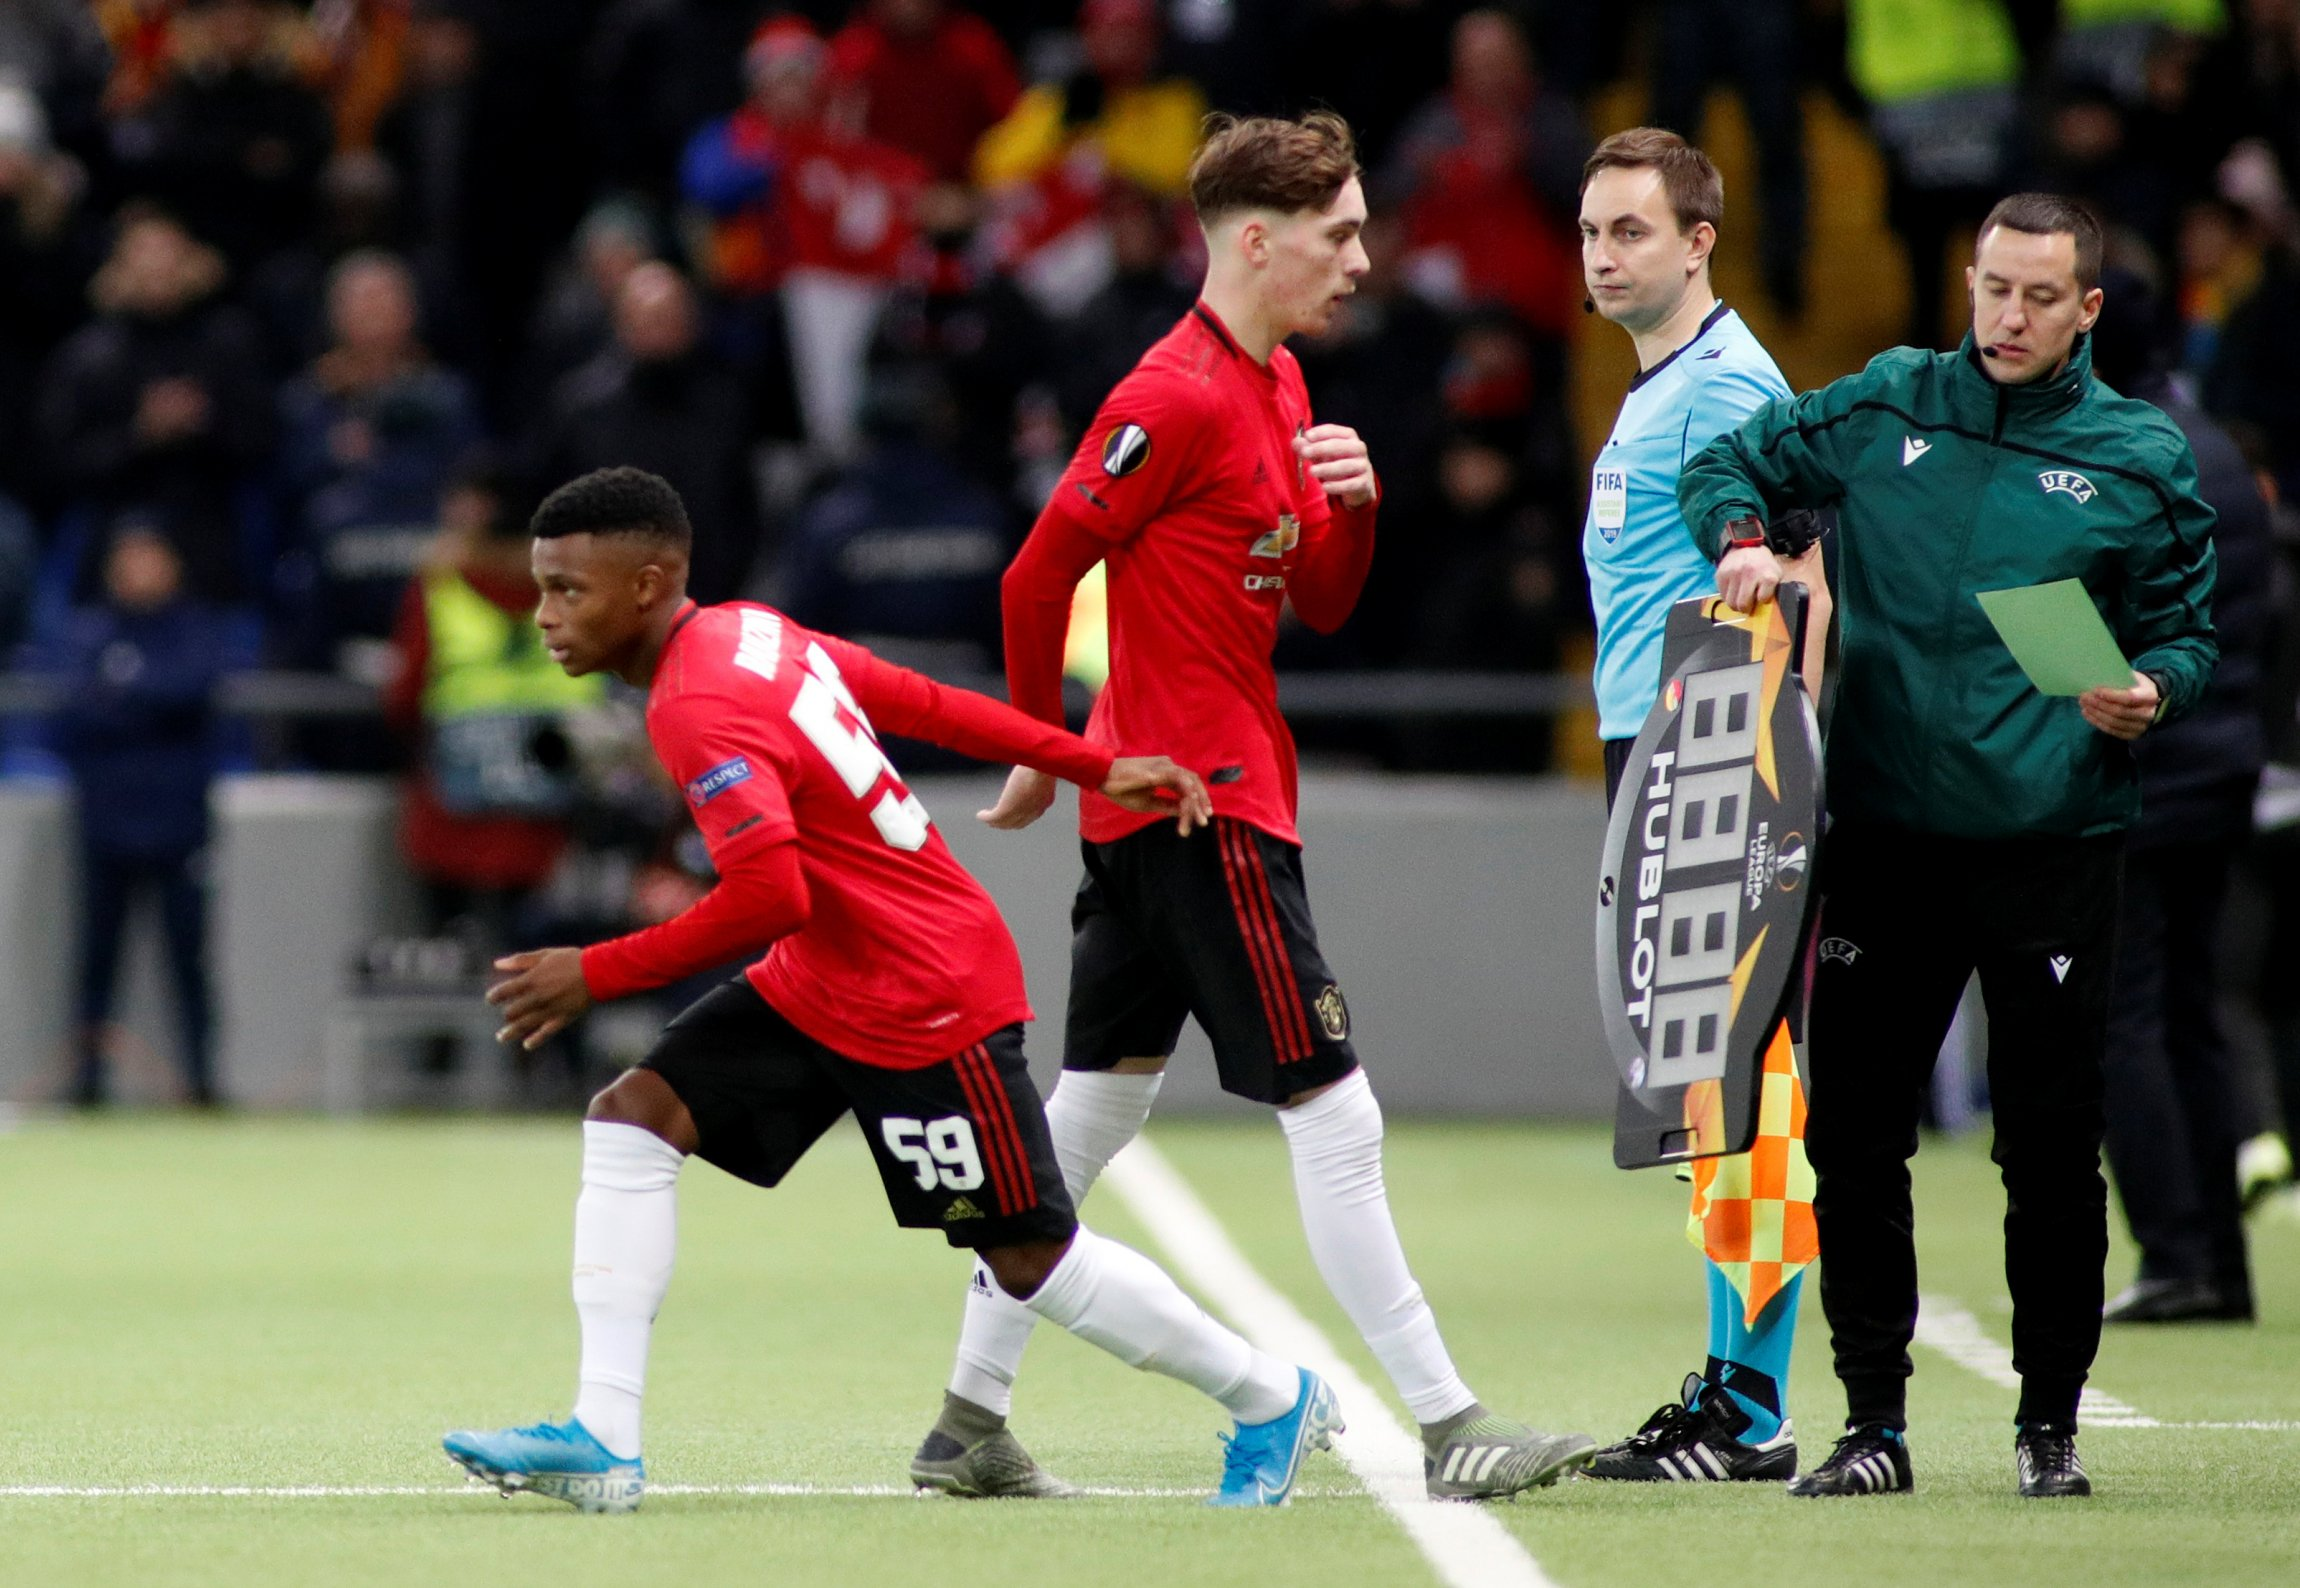 United Confirm Nine U23 Players To Be Released